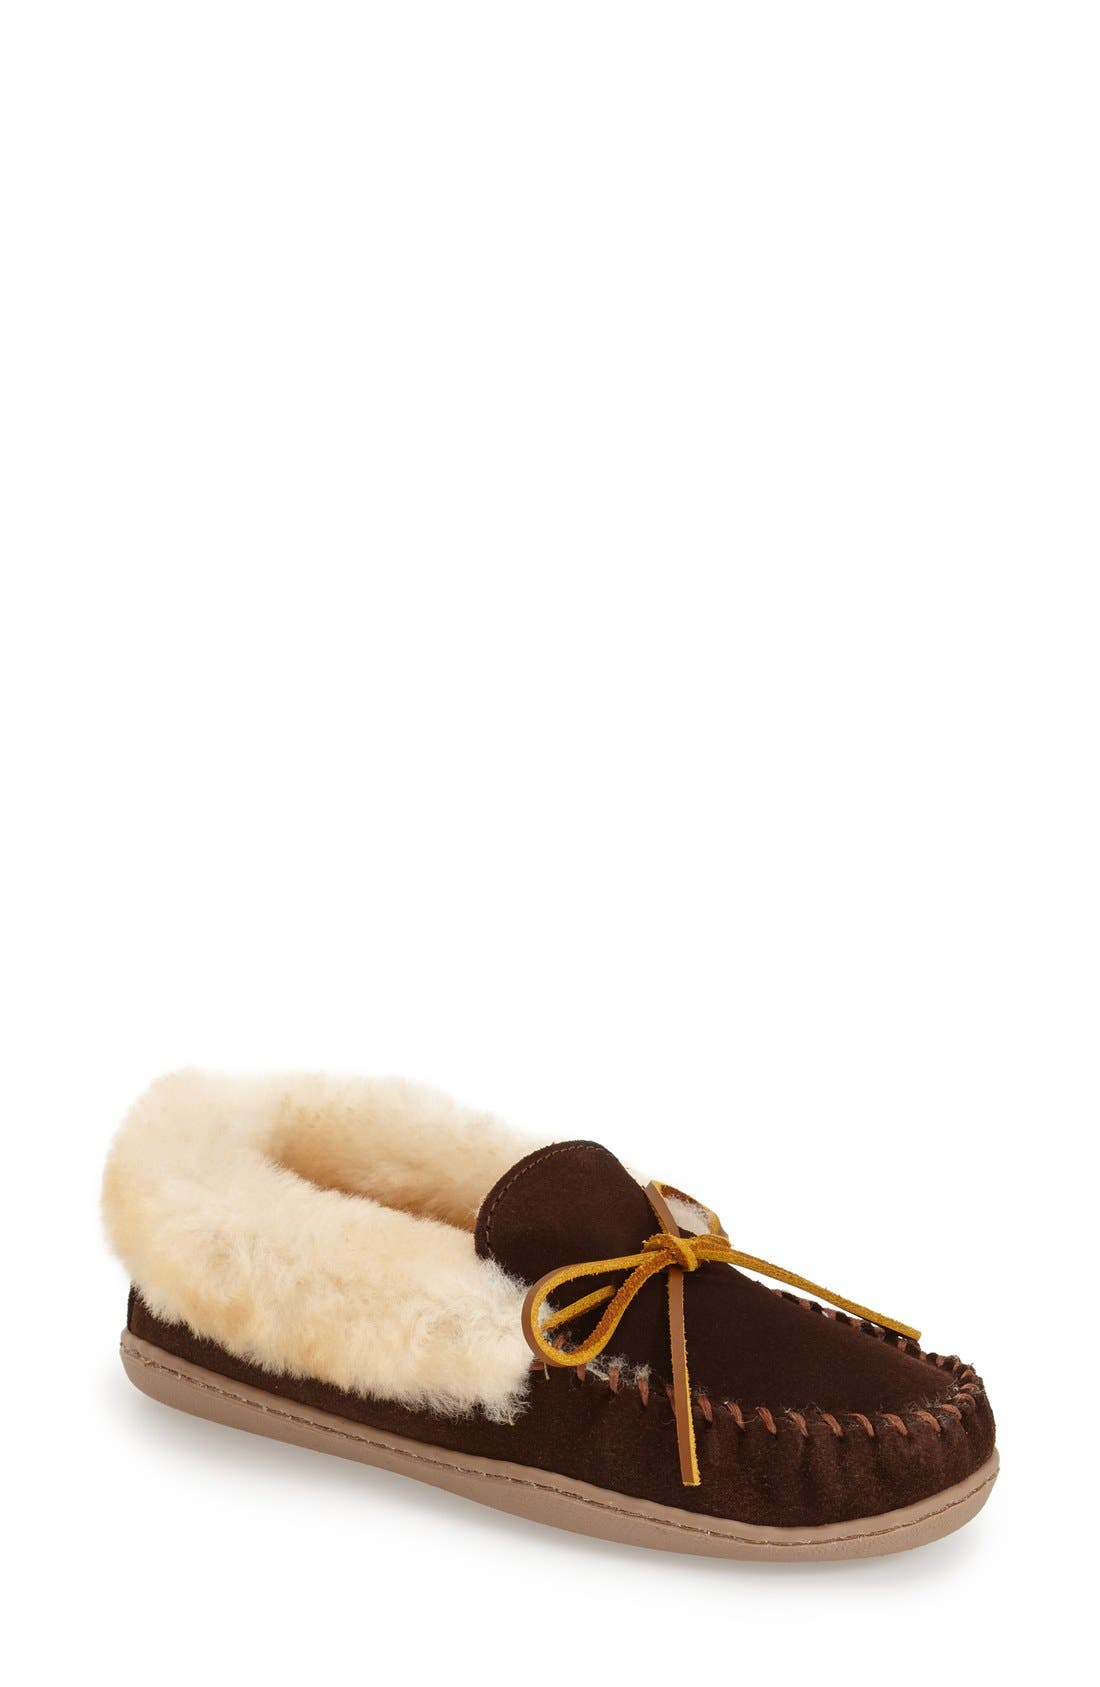 Minnetonka 'Alpine' Genuine Shearling Moccasin Slipper (Women)